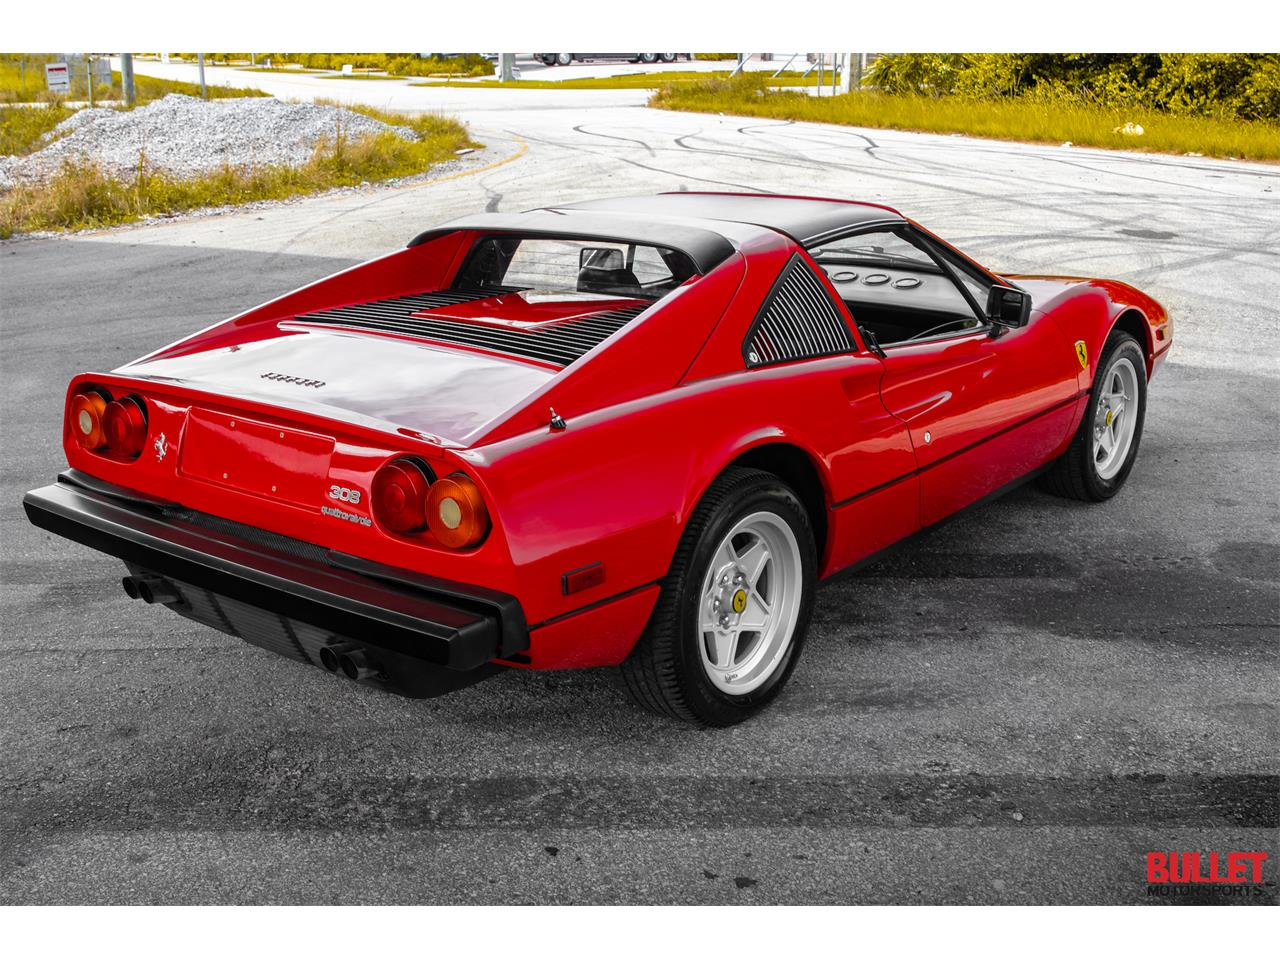 Large Picture of '85 Ferrari 308 GTS located in Florida - $65,000.00 Offered by Bullet Motorsports Inc - PPFL